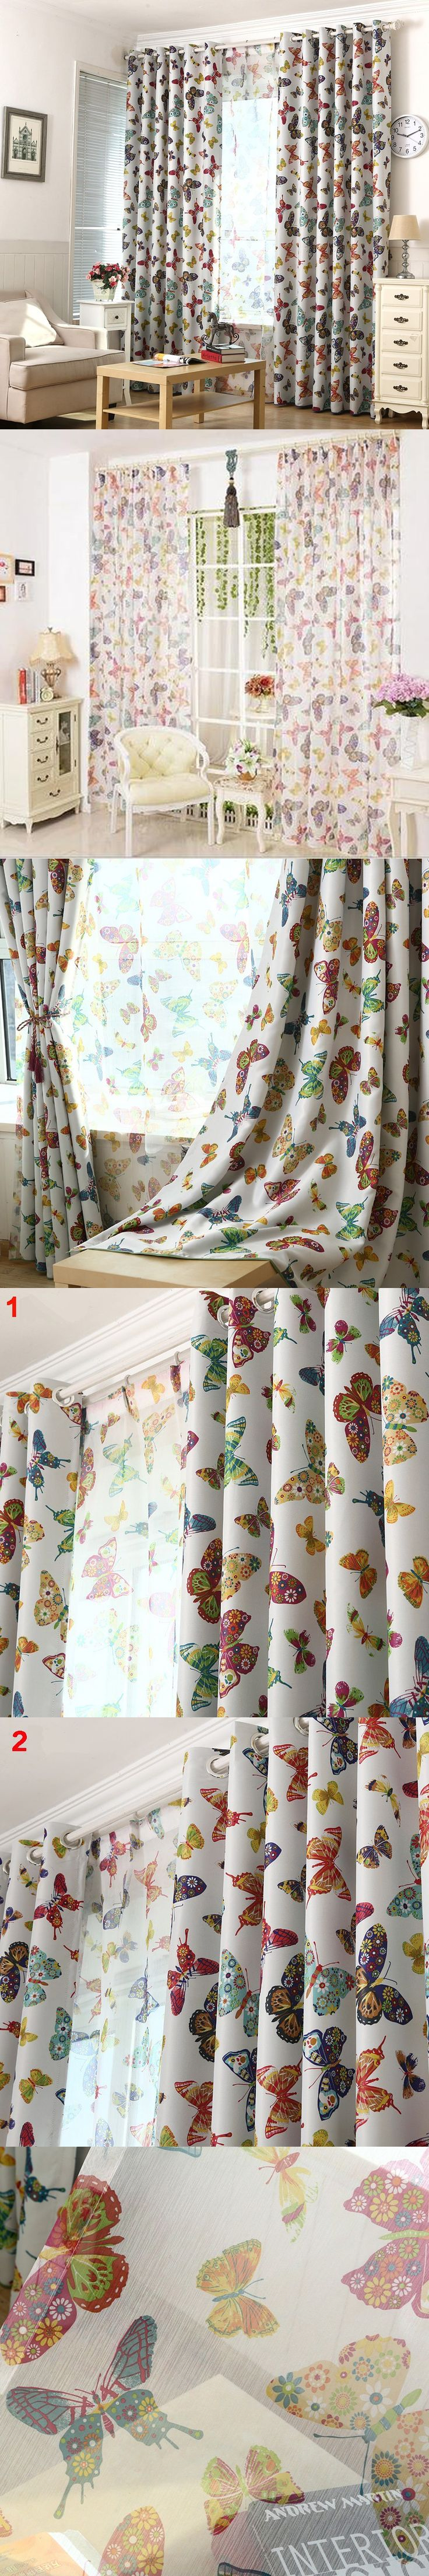 Butterfly Style Window Curtains For Boy Girl Bedroom Blackout Cloth Curtain+Voile Curtain Mediterranean Luxury Room Curtains $13.97